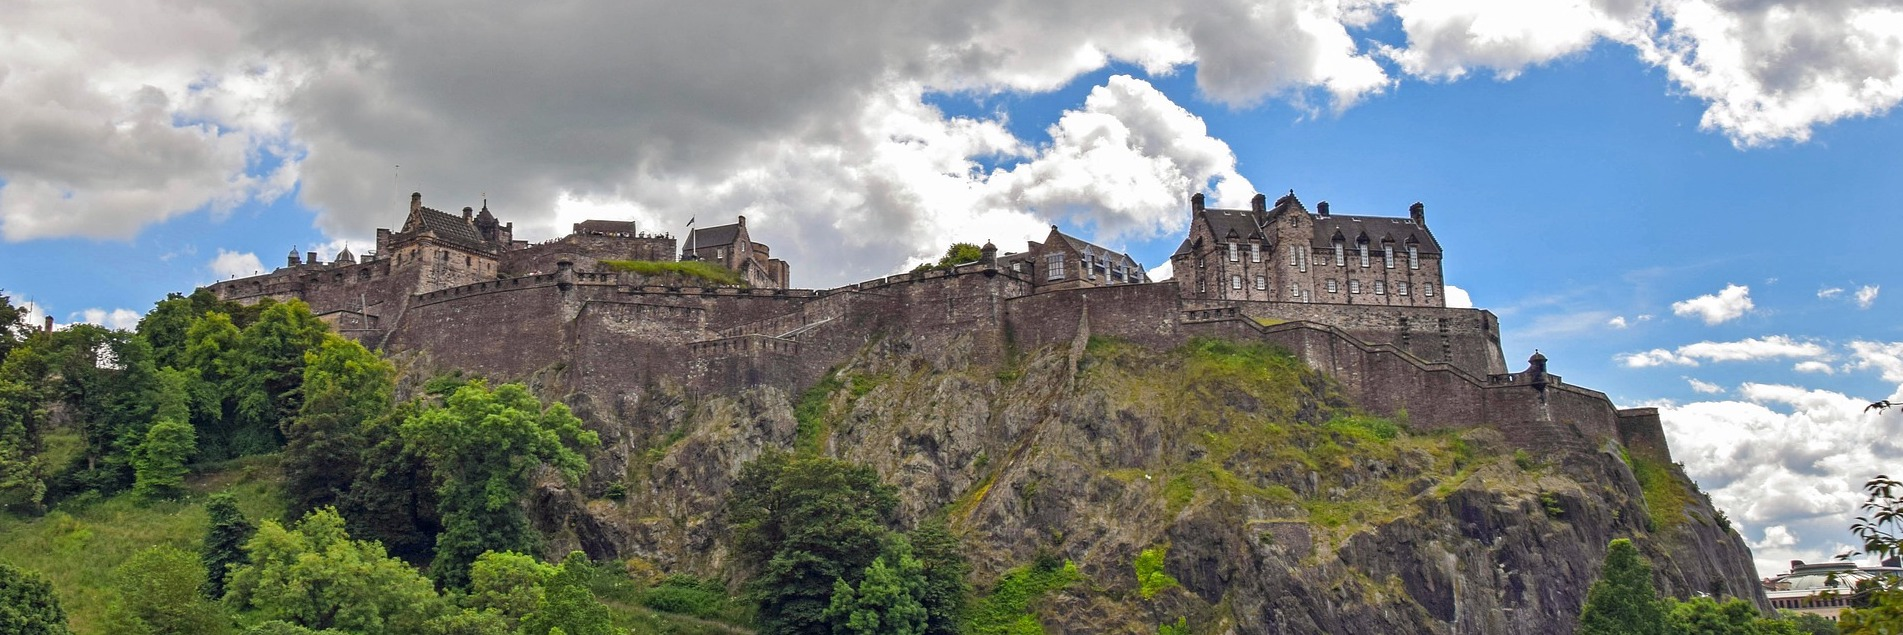 Self catering city break in Edinburgh Scotland